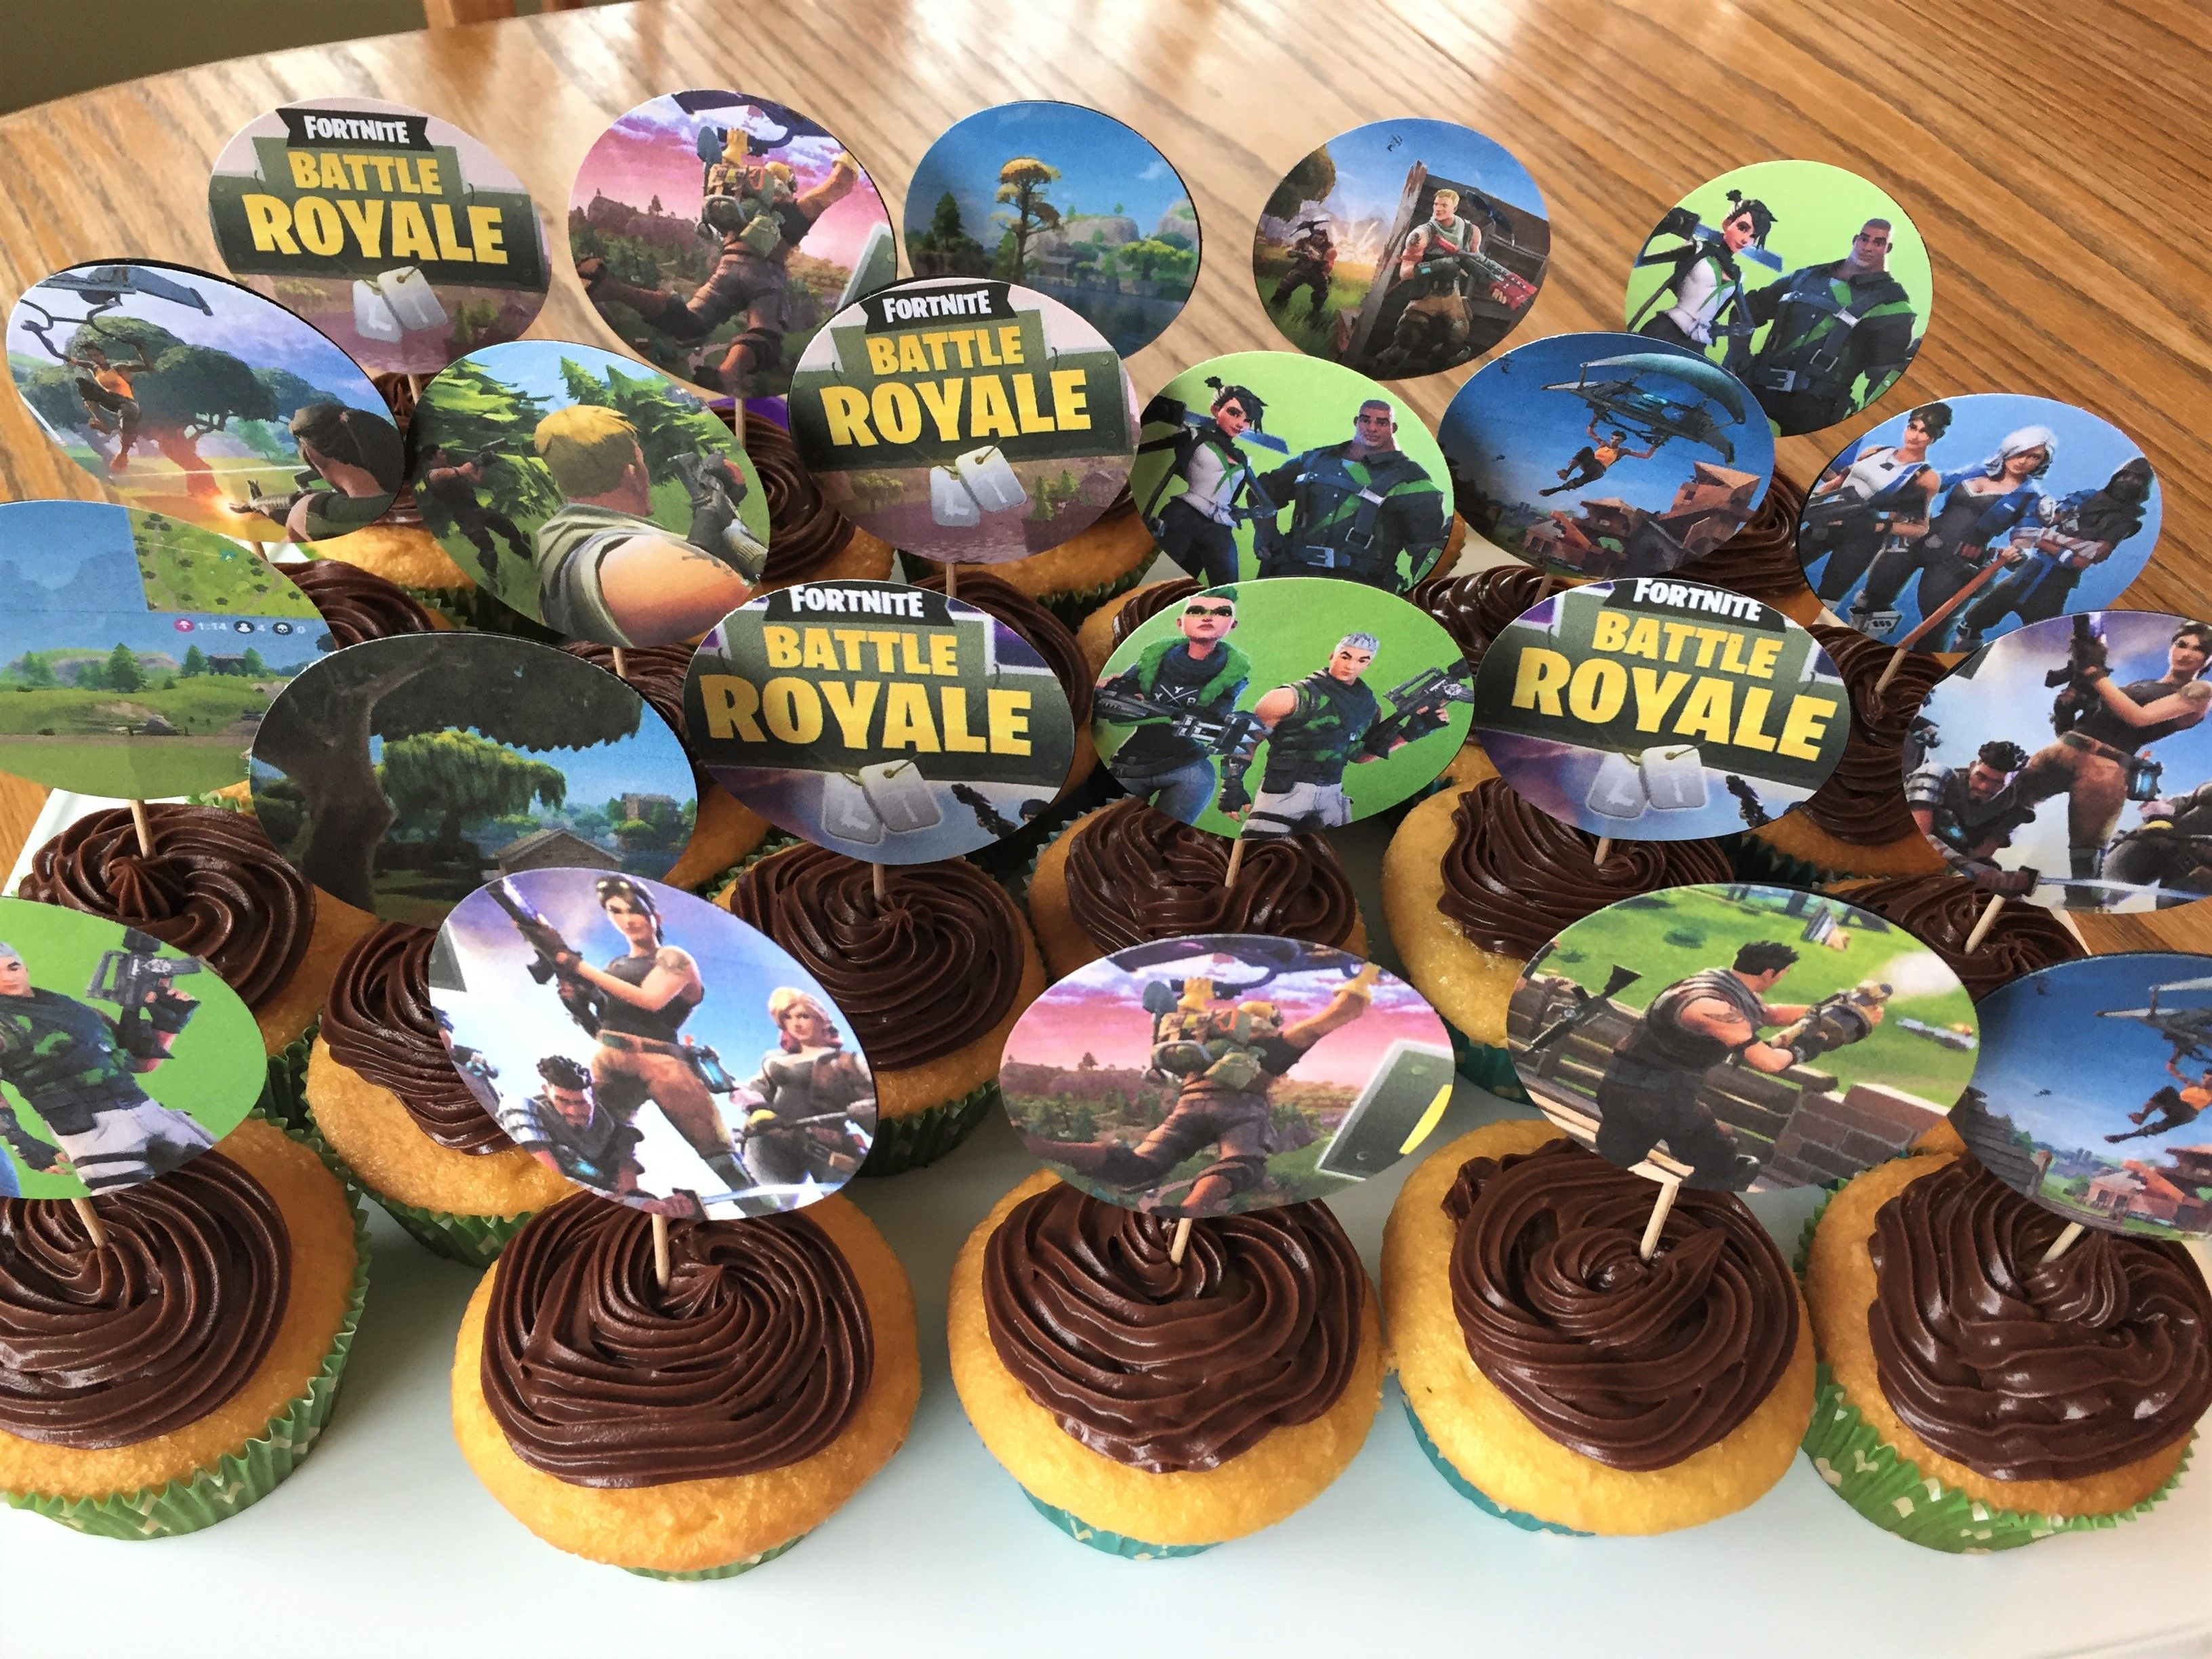 I Made These Fortnite Cupcakes For My Son's 13Th Birthday Party - Free Printable Fortnite Cupcake Toppers